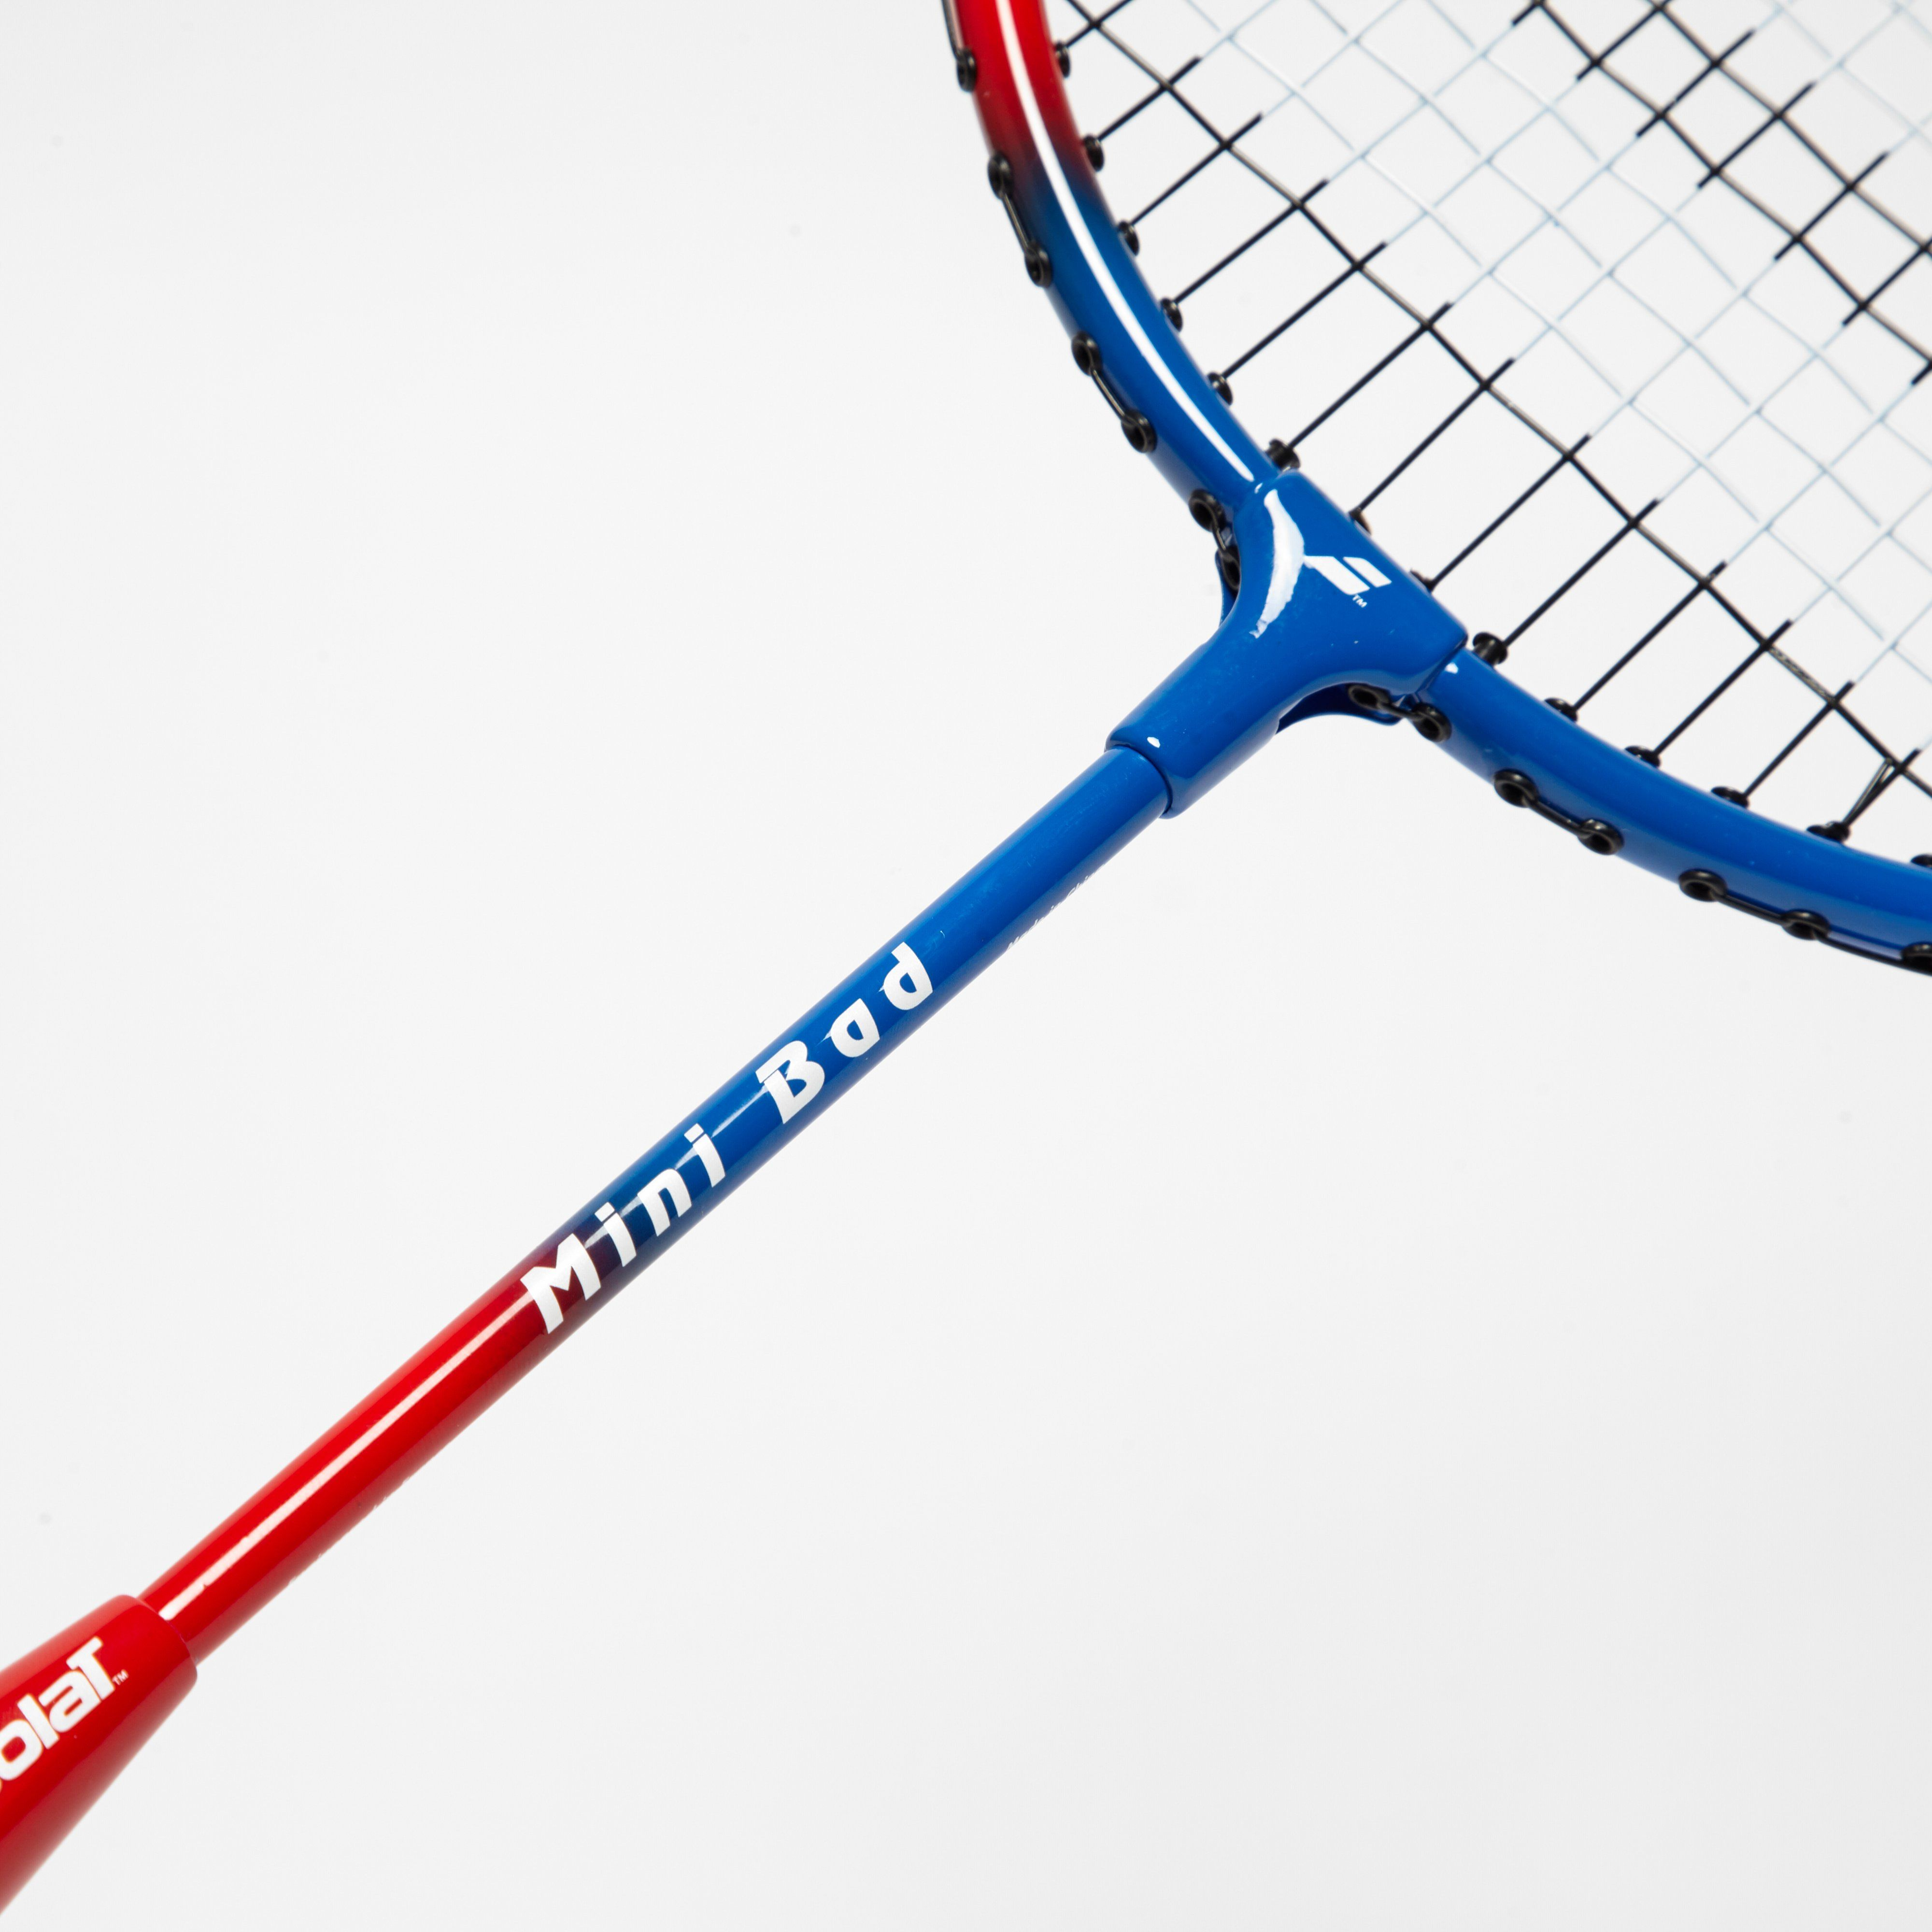 Babolat Mini Bad Junior Badminton Racket